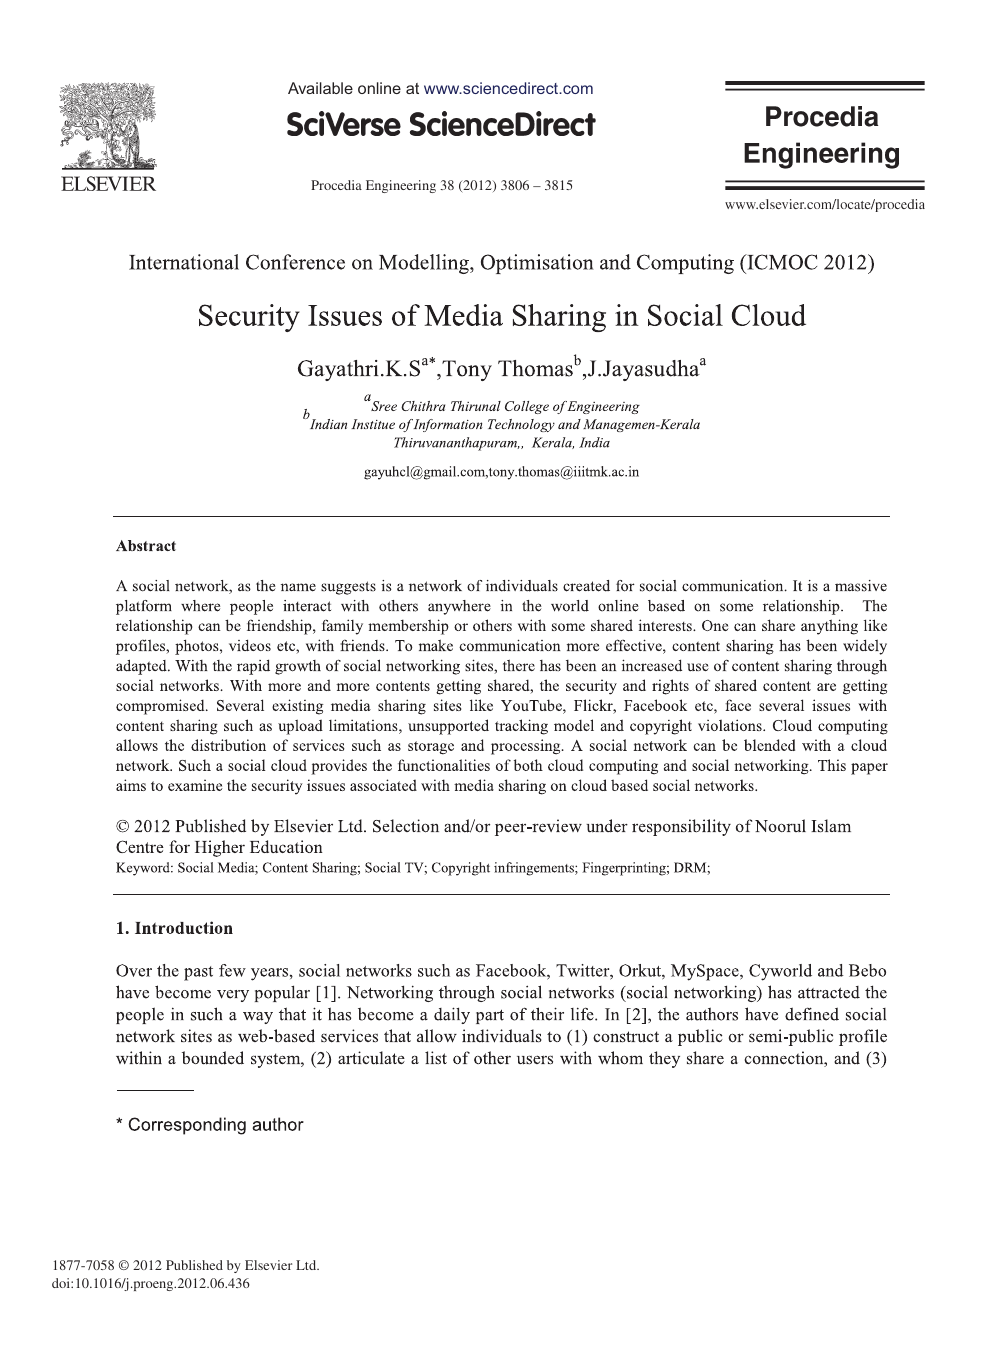 Security Issues of Media Sharing in Social Cloud – topic of research